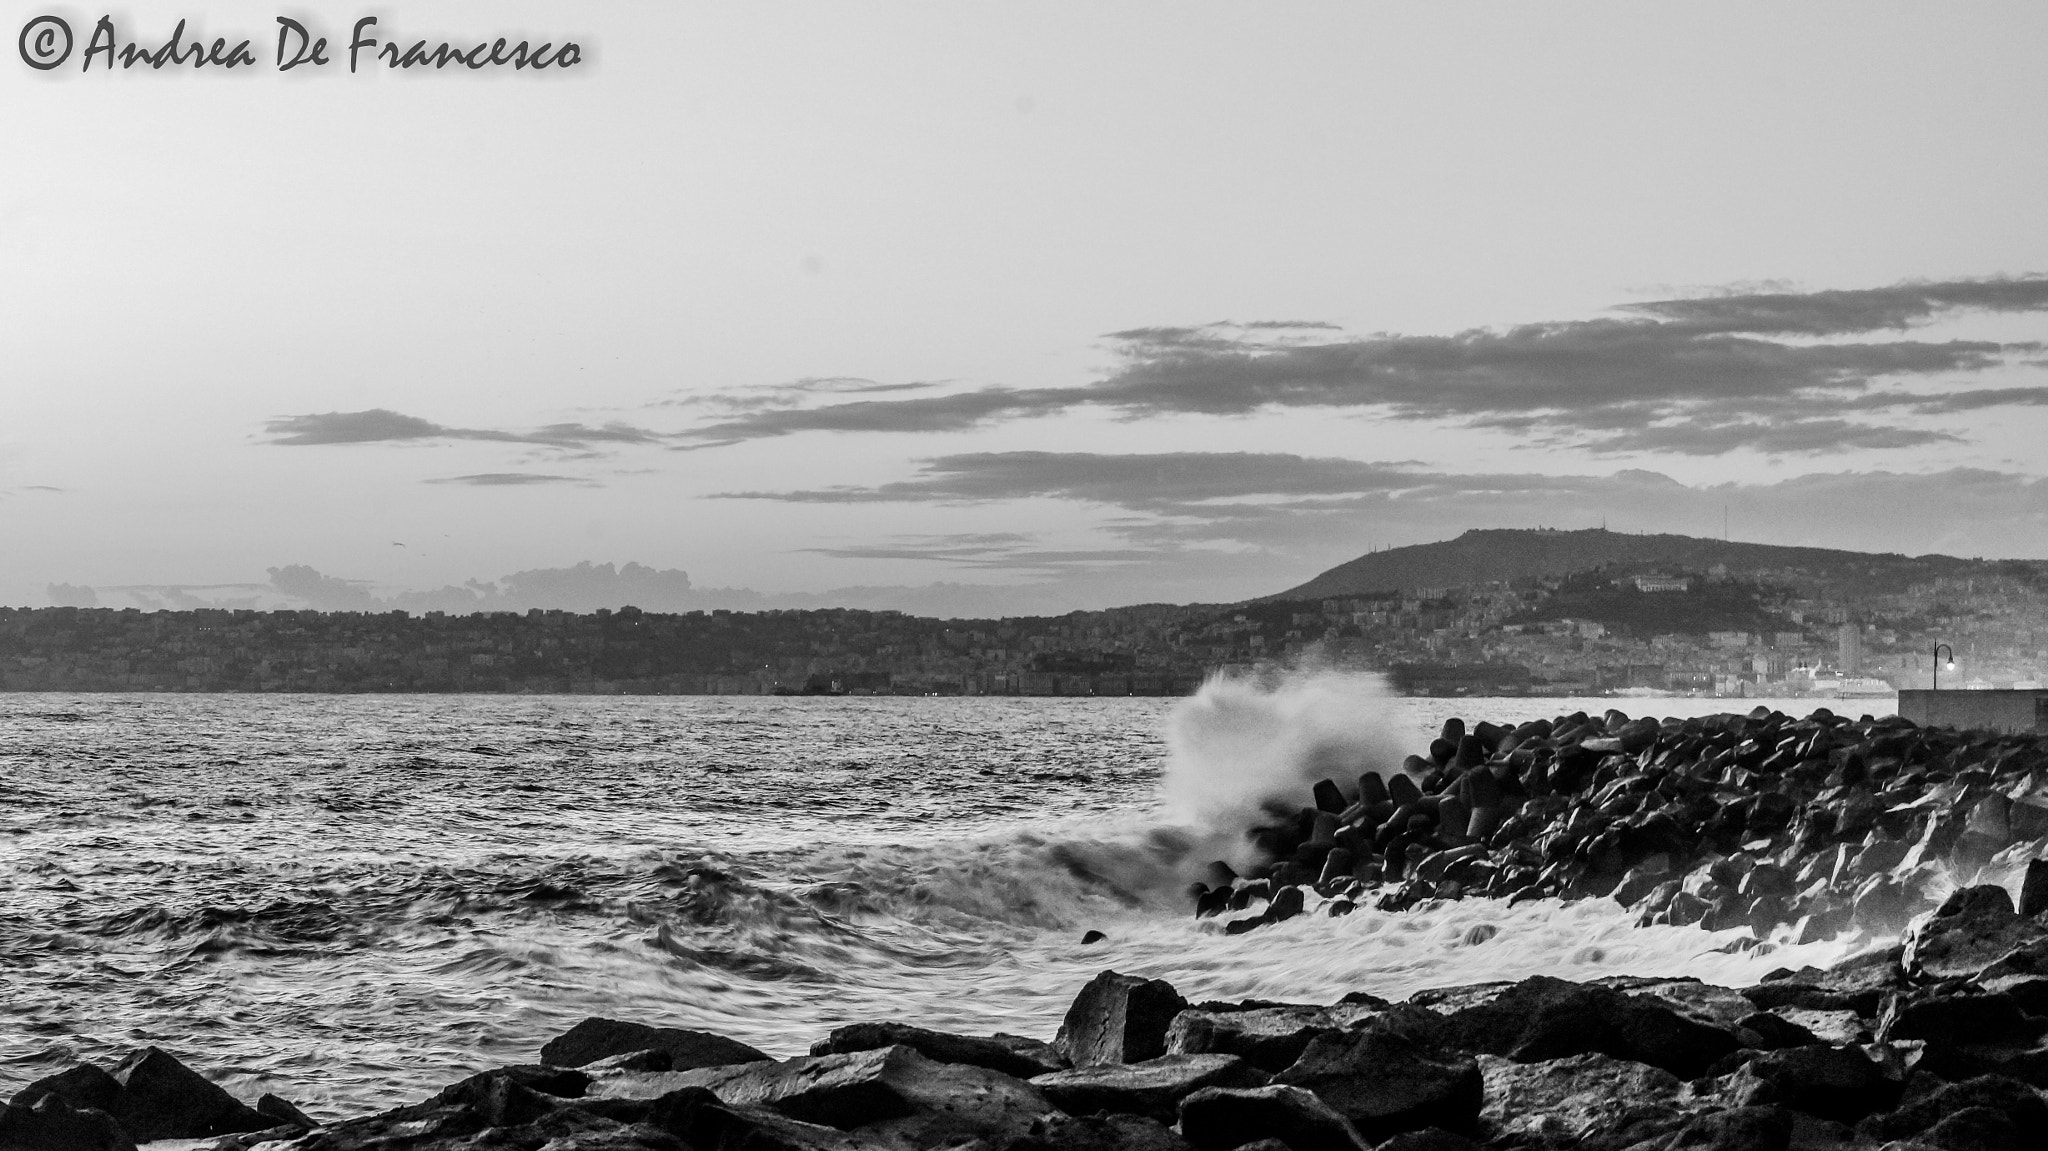 Photograph Waves on the reef by Andrea De Francesco on 500px